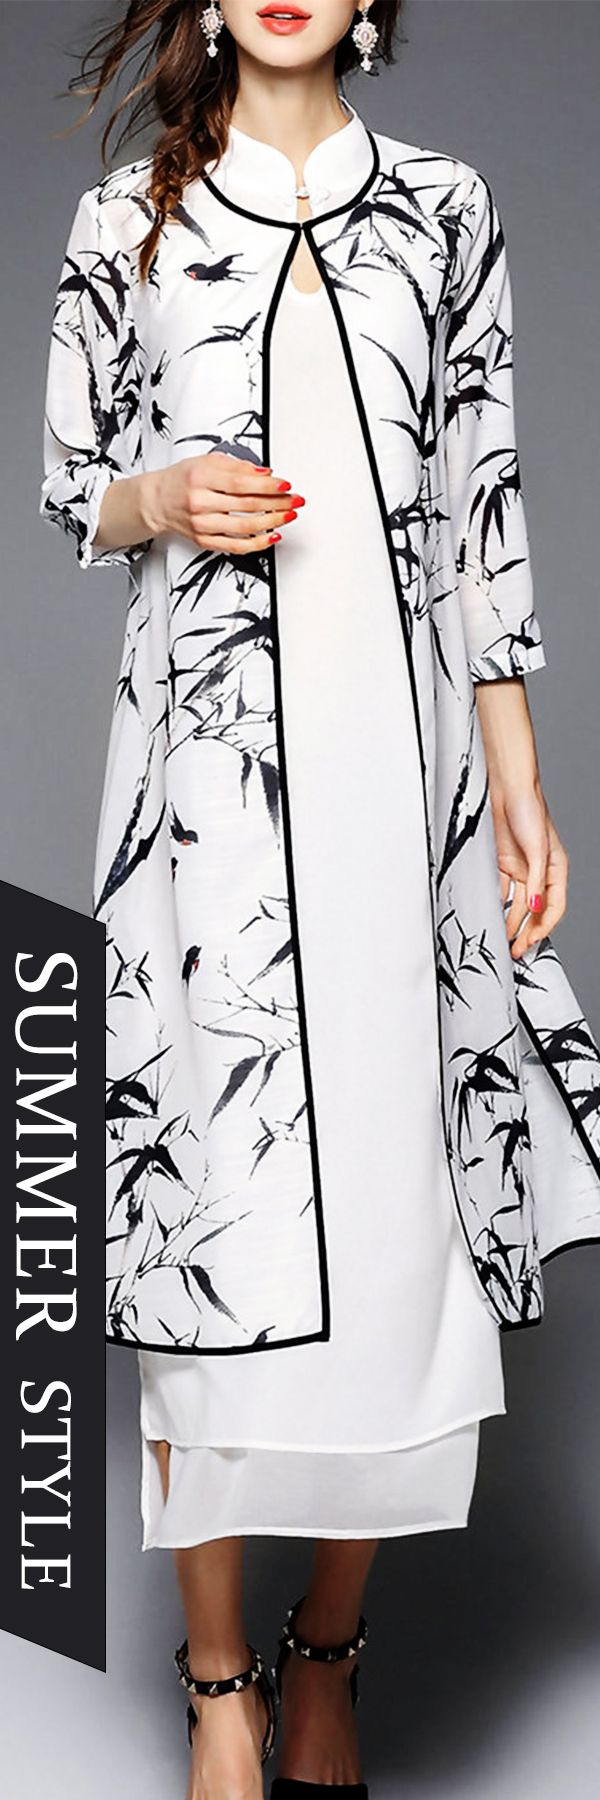 Experience Asian Elegance. Comfortable Summer Dress and More are Waiting For You at vipme.com !